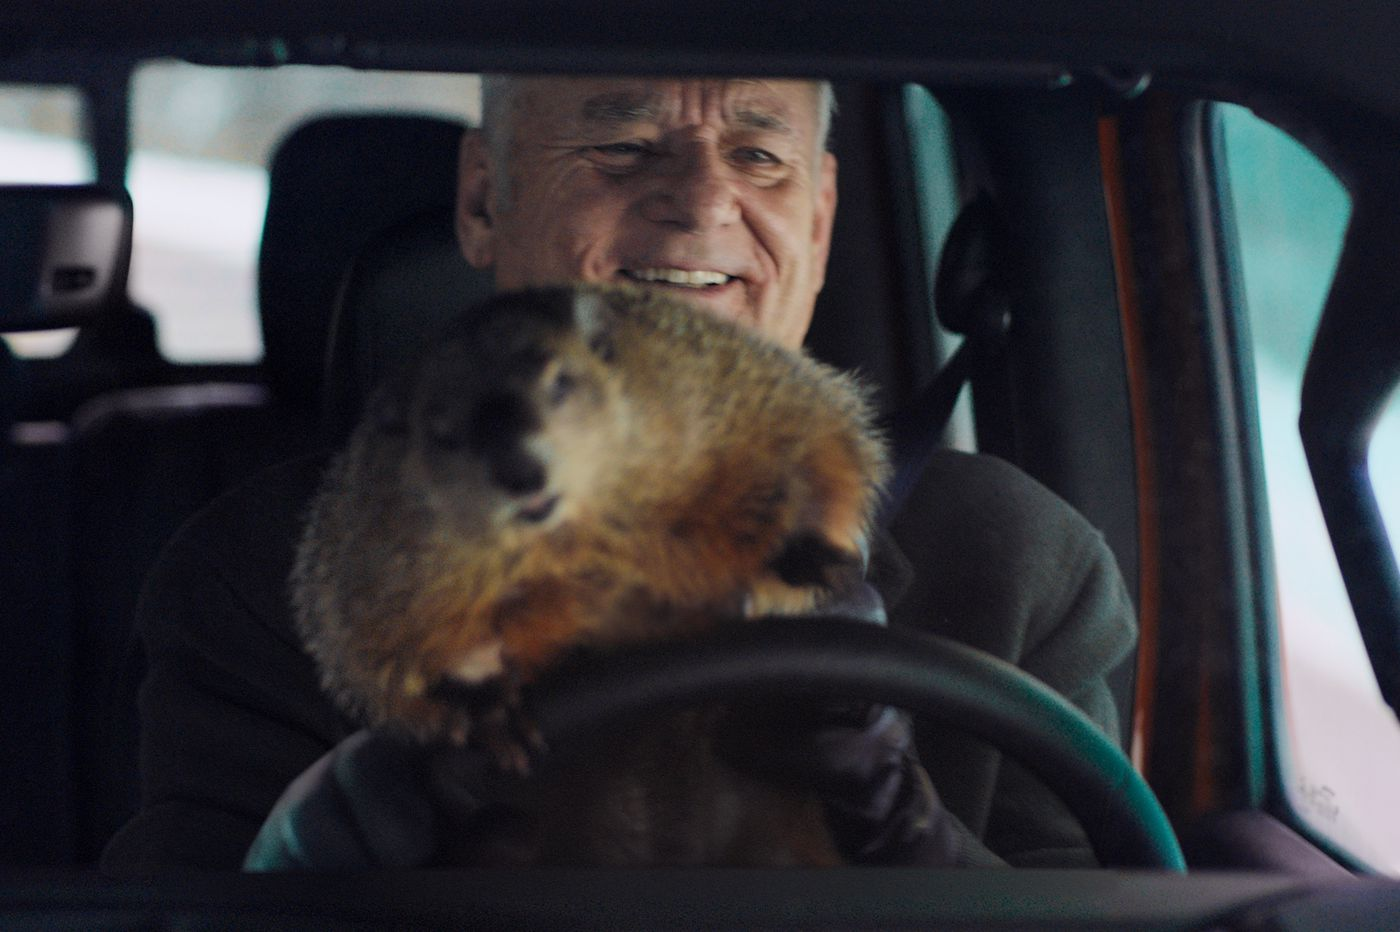 The strange story of a Bill Murray Super Bowl ad and a Pennsylvania groundhog that has her own merch